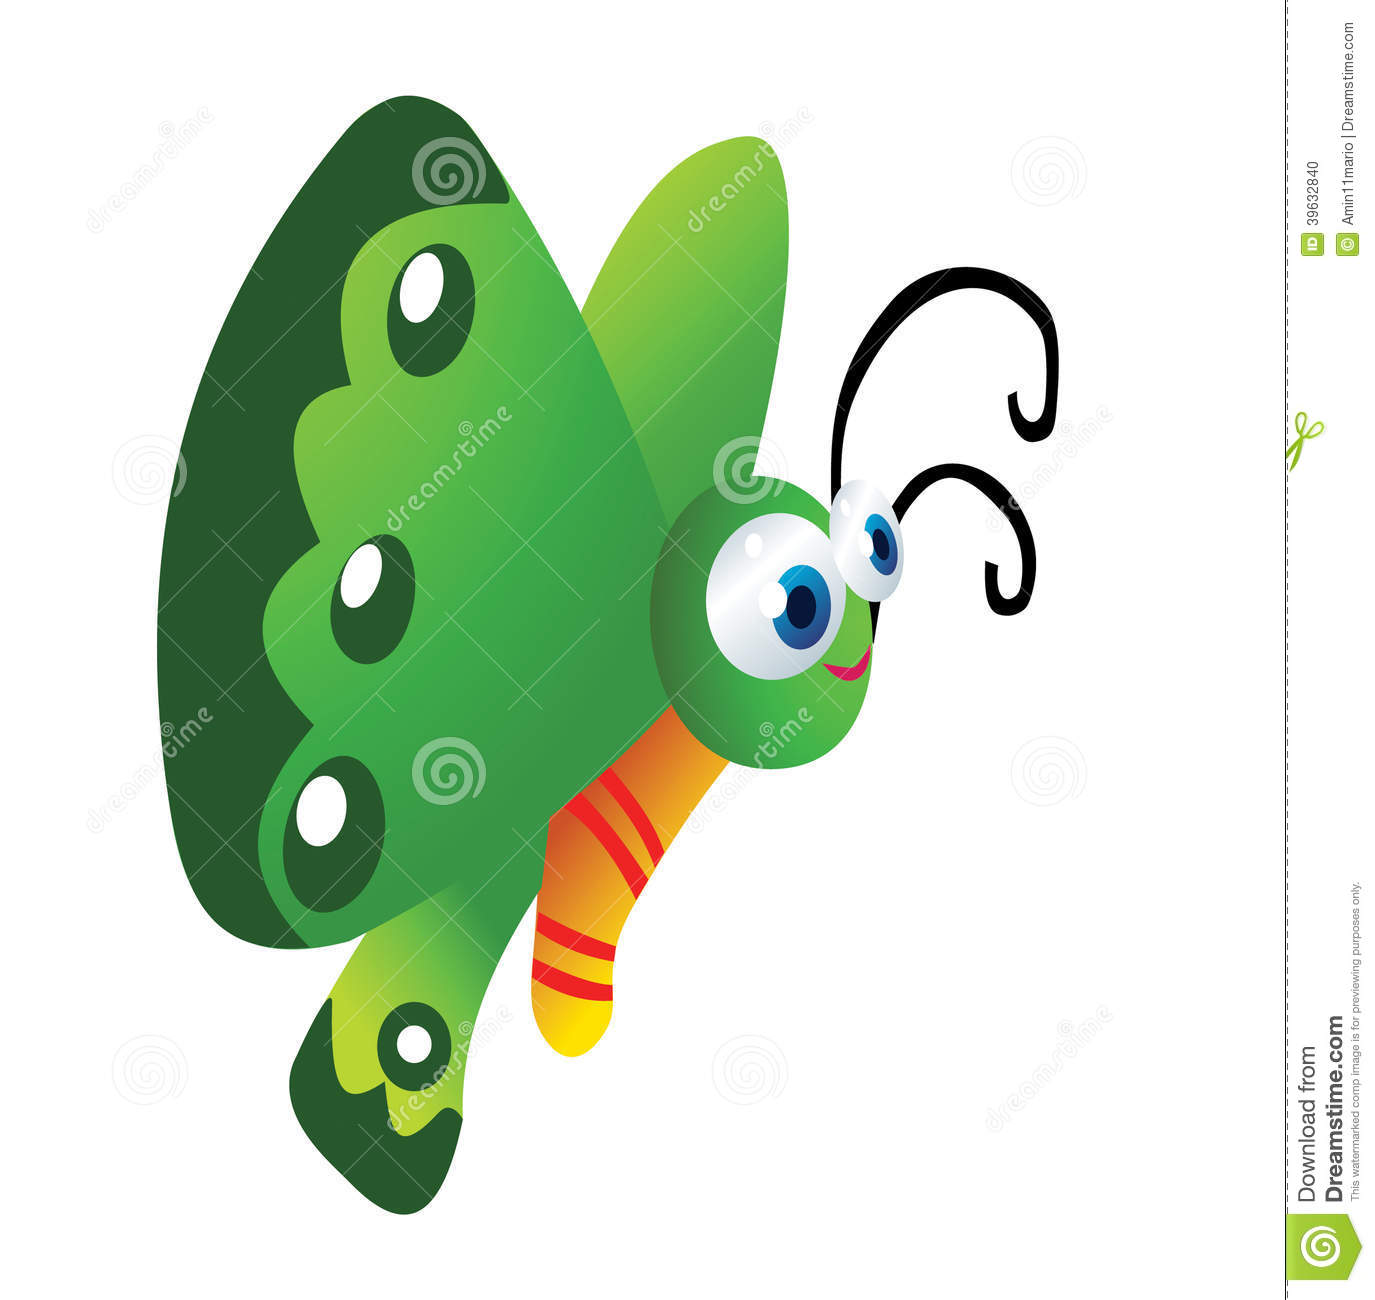 Funny Butterfly Cartoon Stock Illustration - Image: 39632840